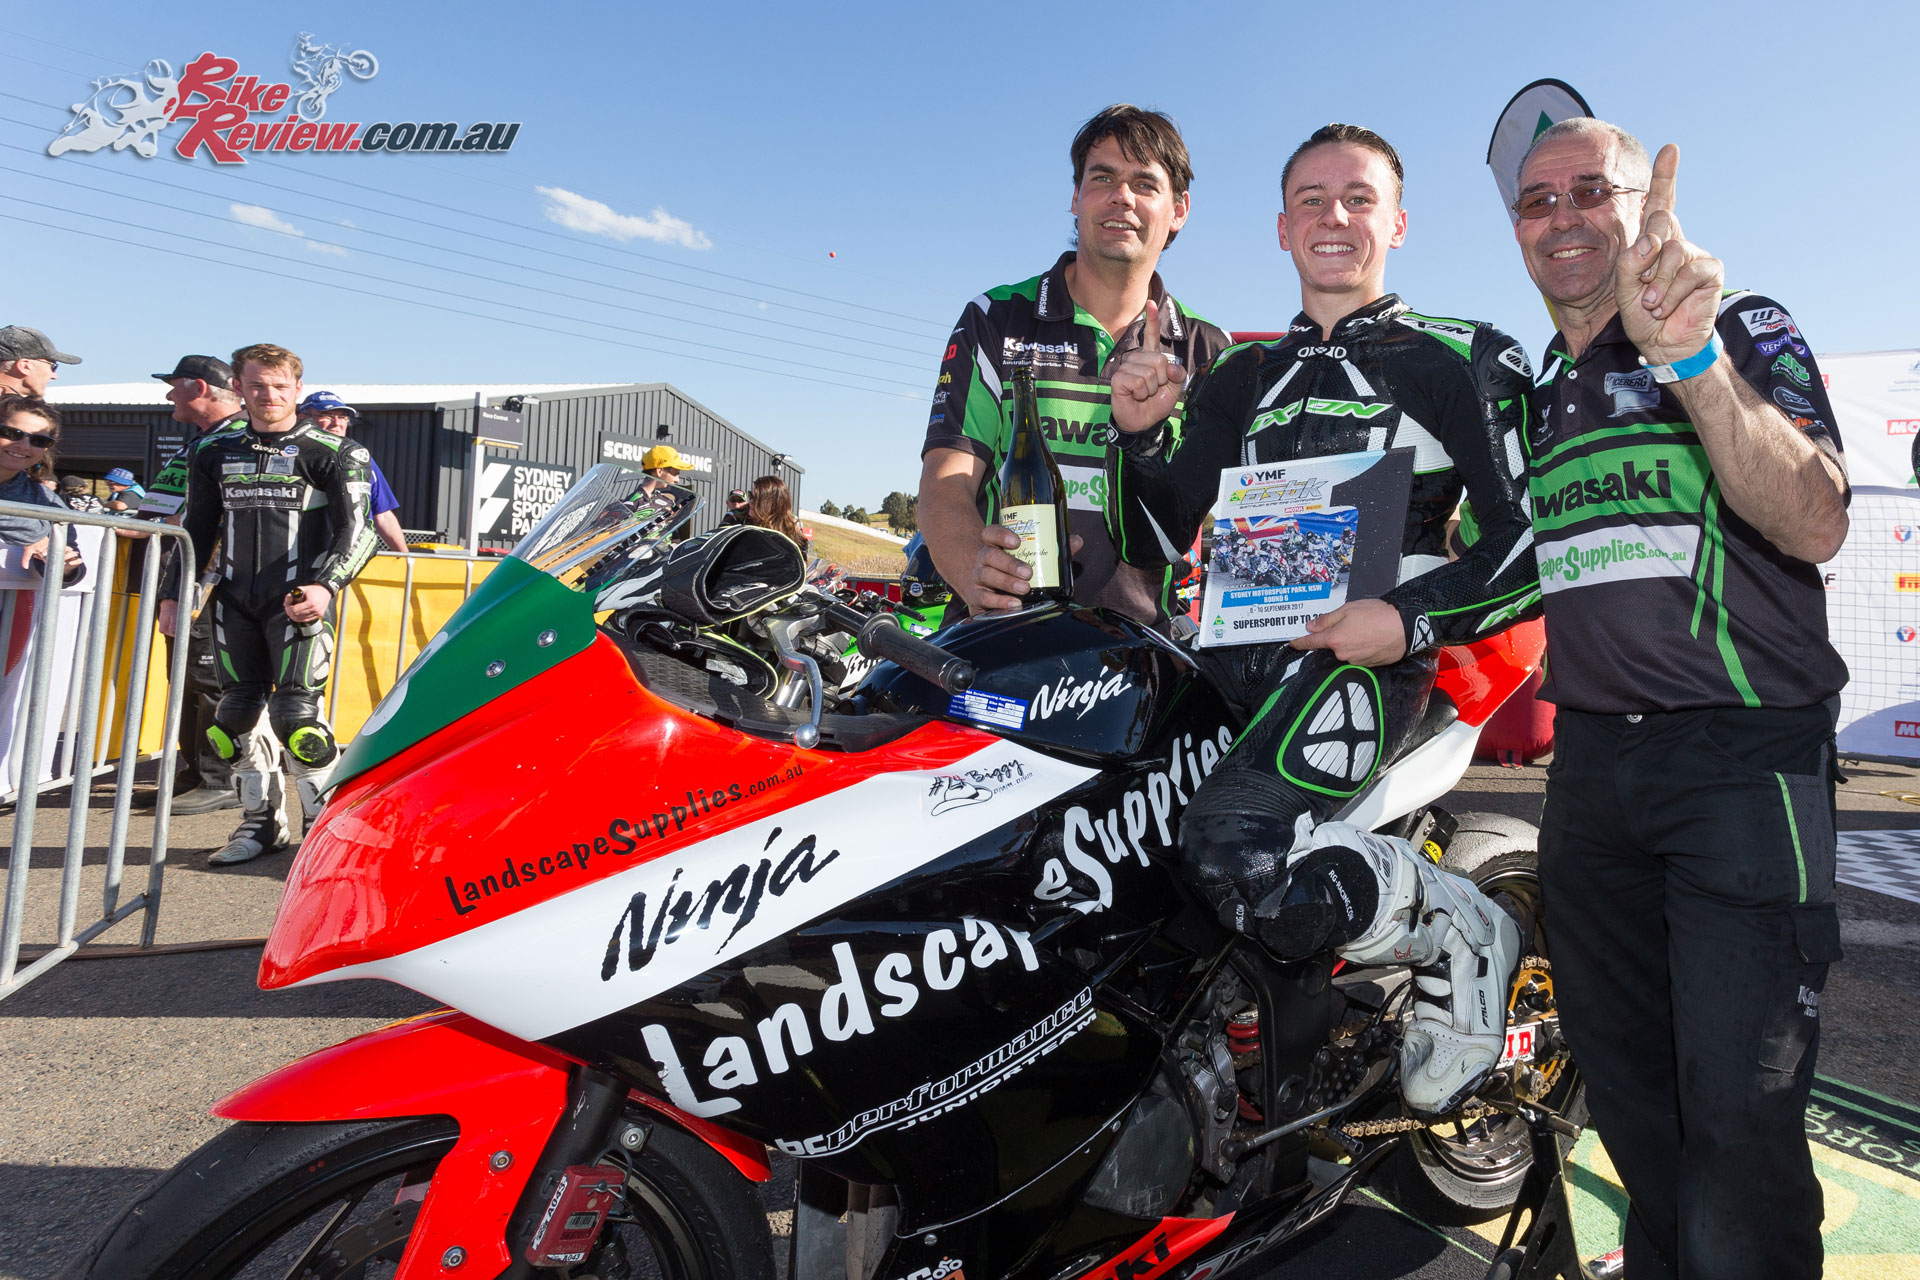 Reid Battye crowned Under 300s Supersport 300 Champion